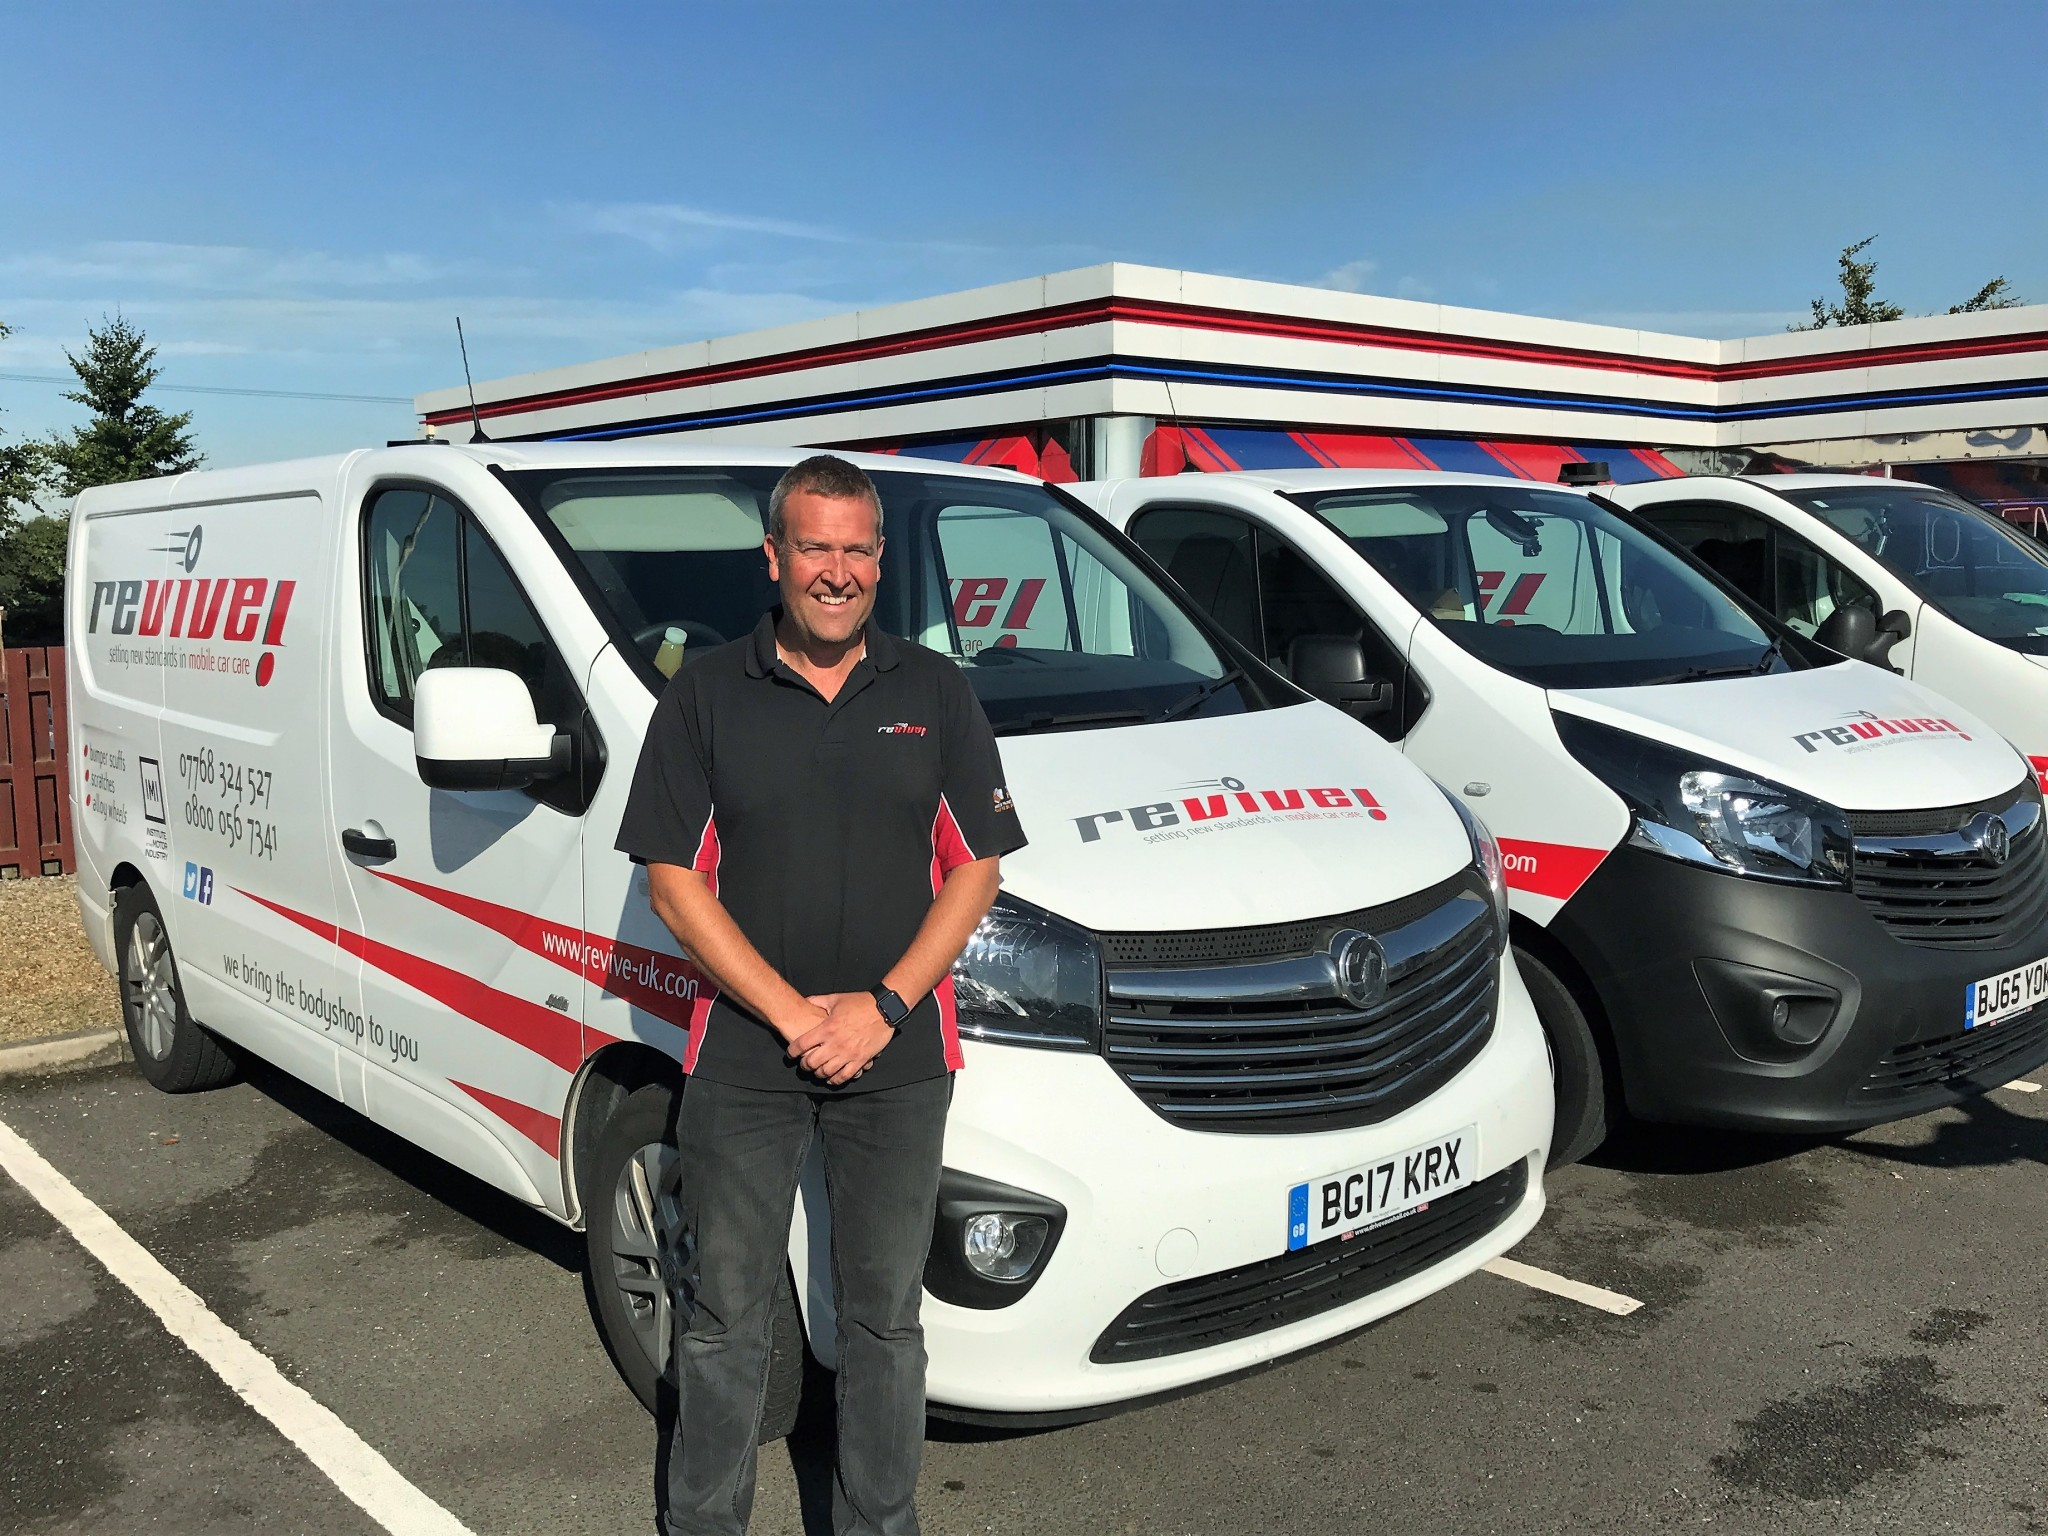 Russell Hudson with his fleet of vans (002)